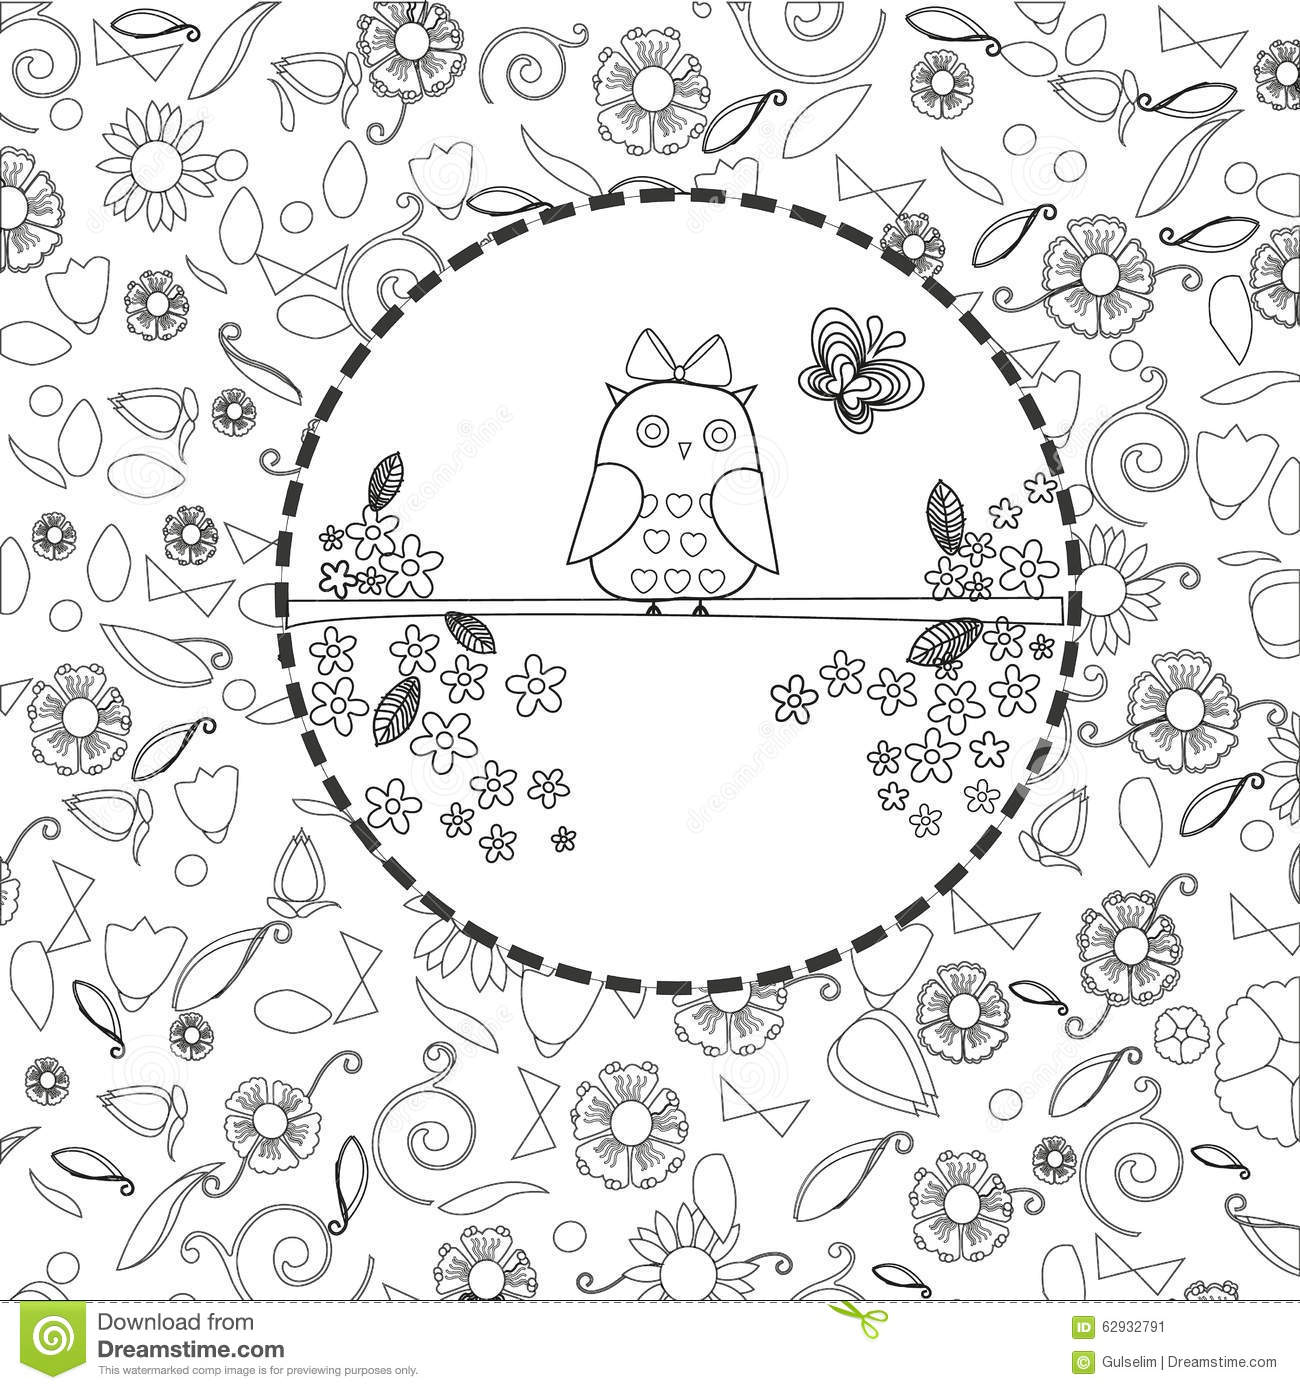 Coloring Book Page For Adults Line Art Creation, Owls And